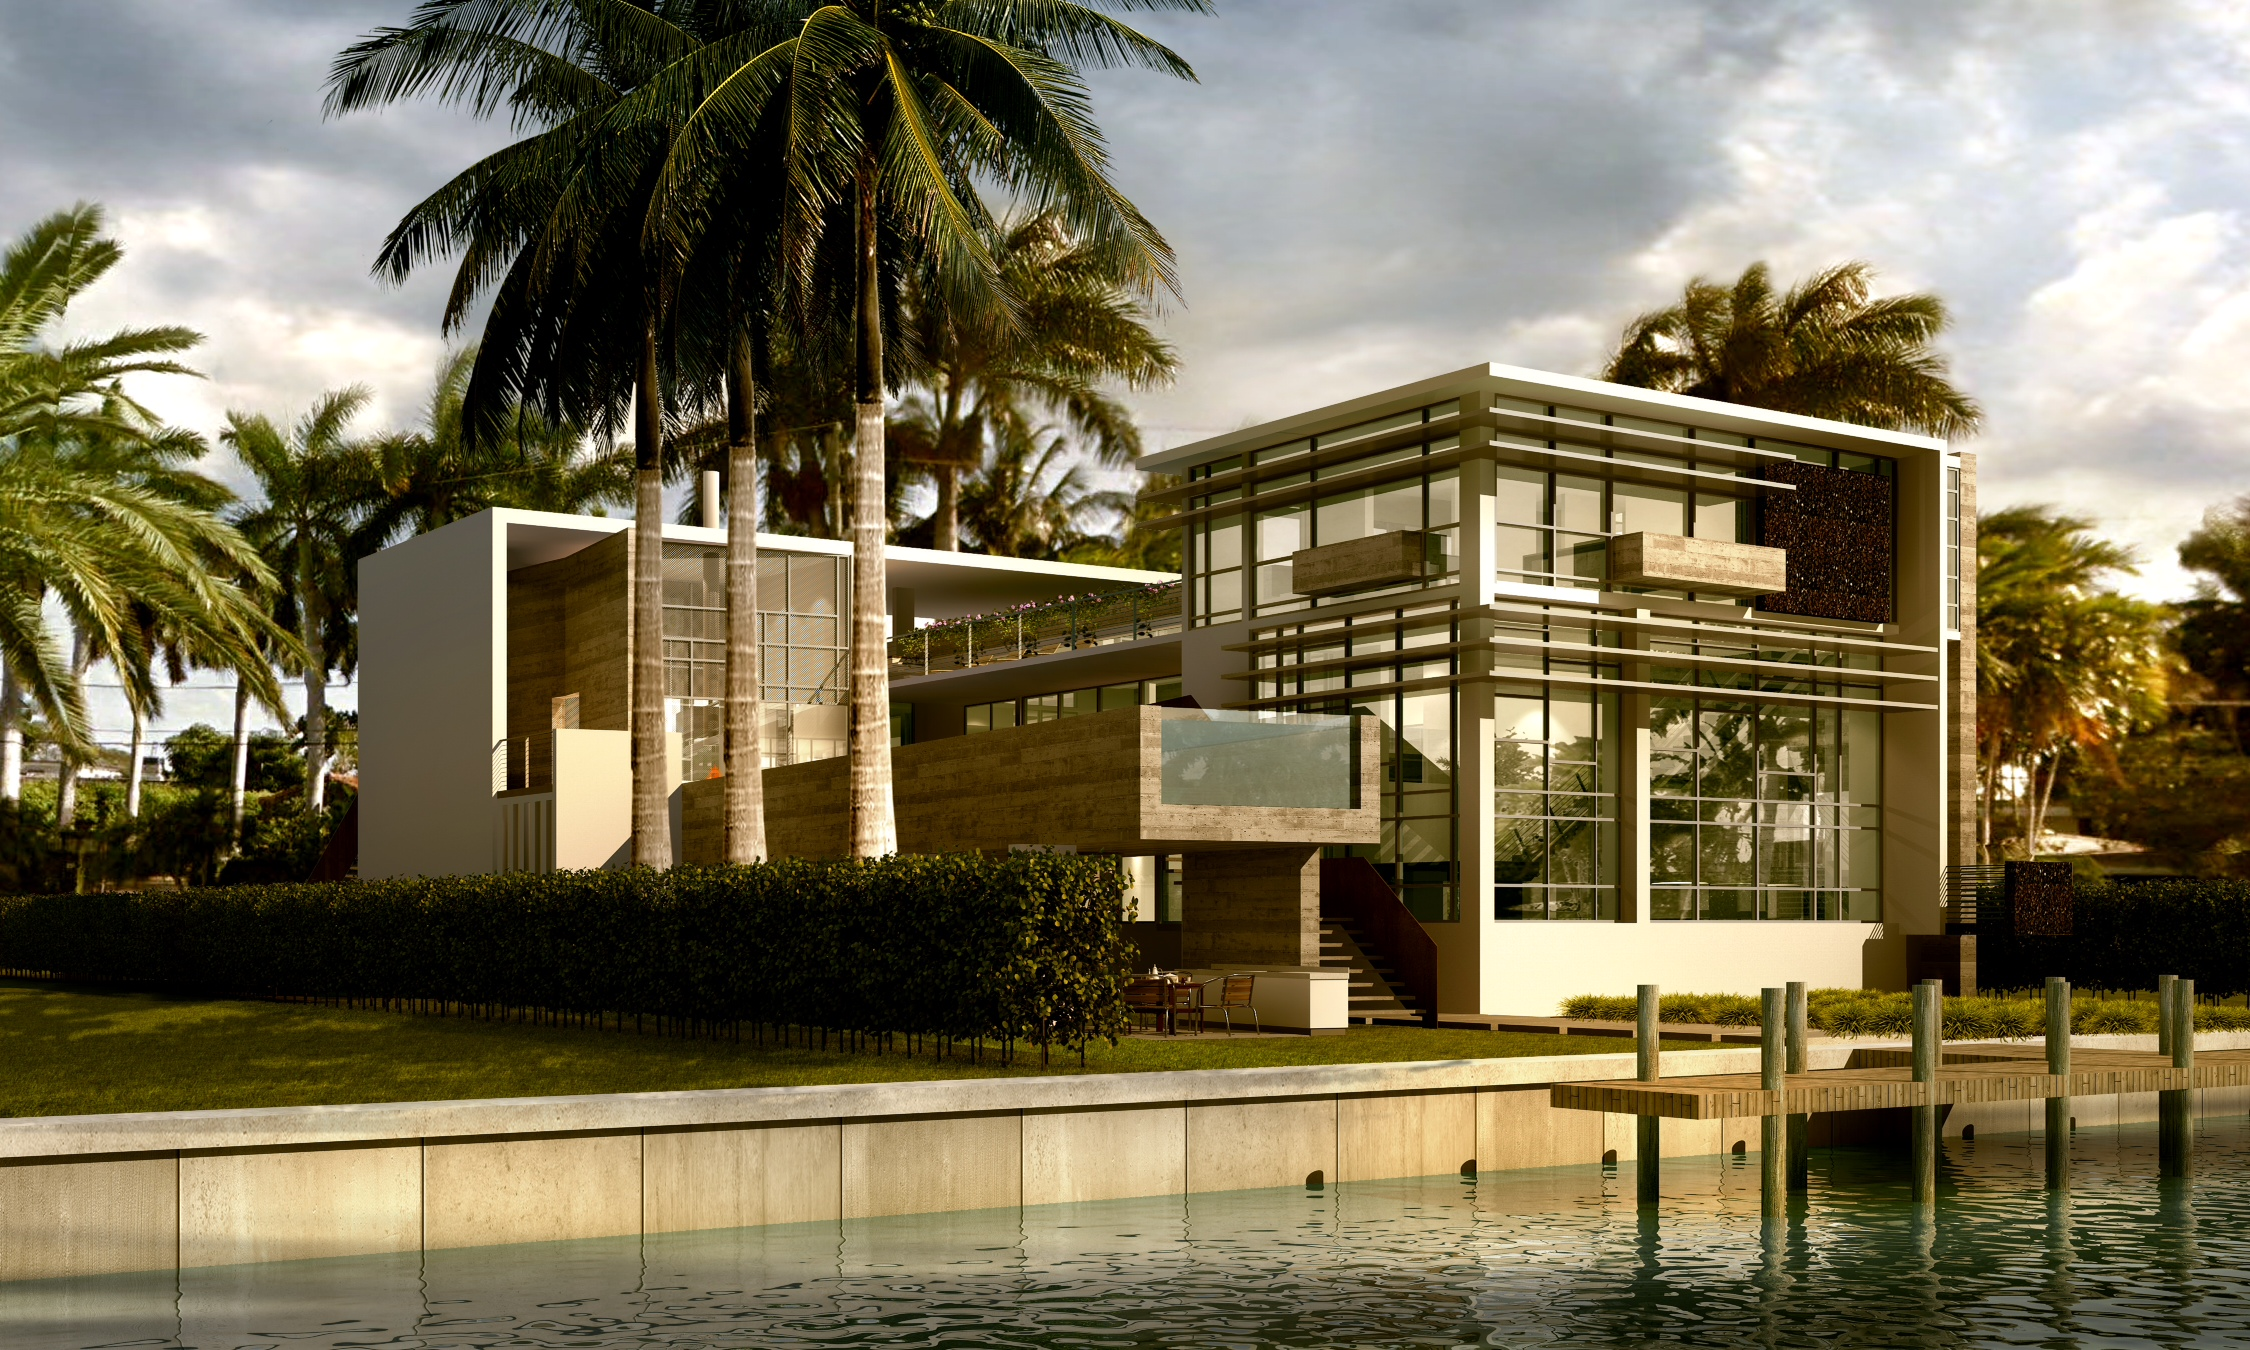 350 South Hibiscus Miami Florida Exterior Render TARIS Real Estate